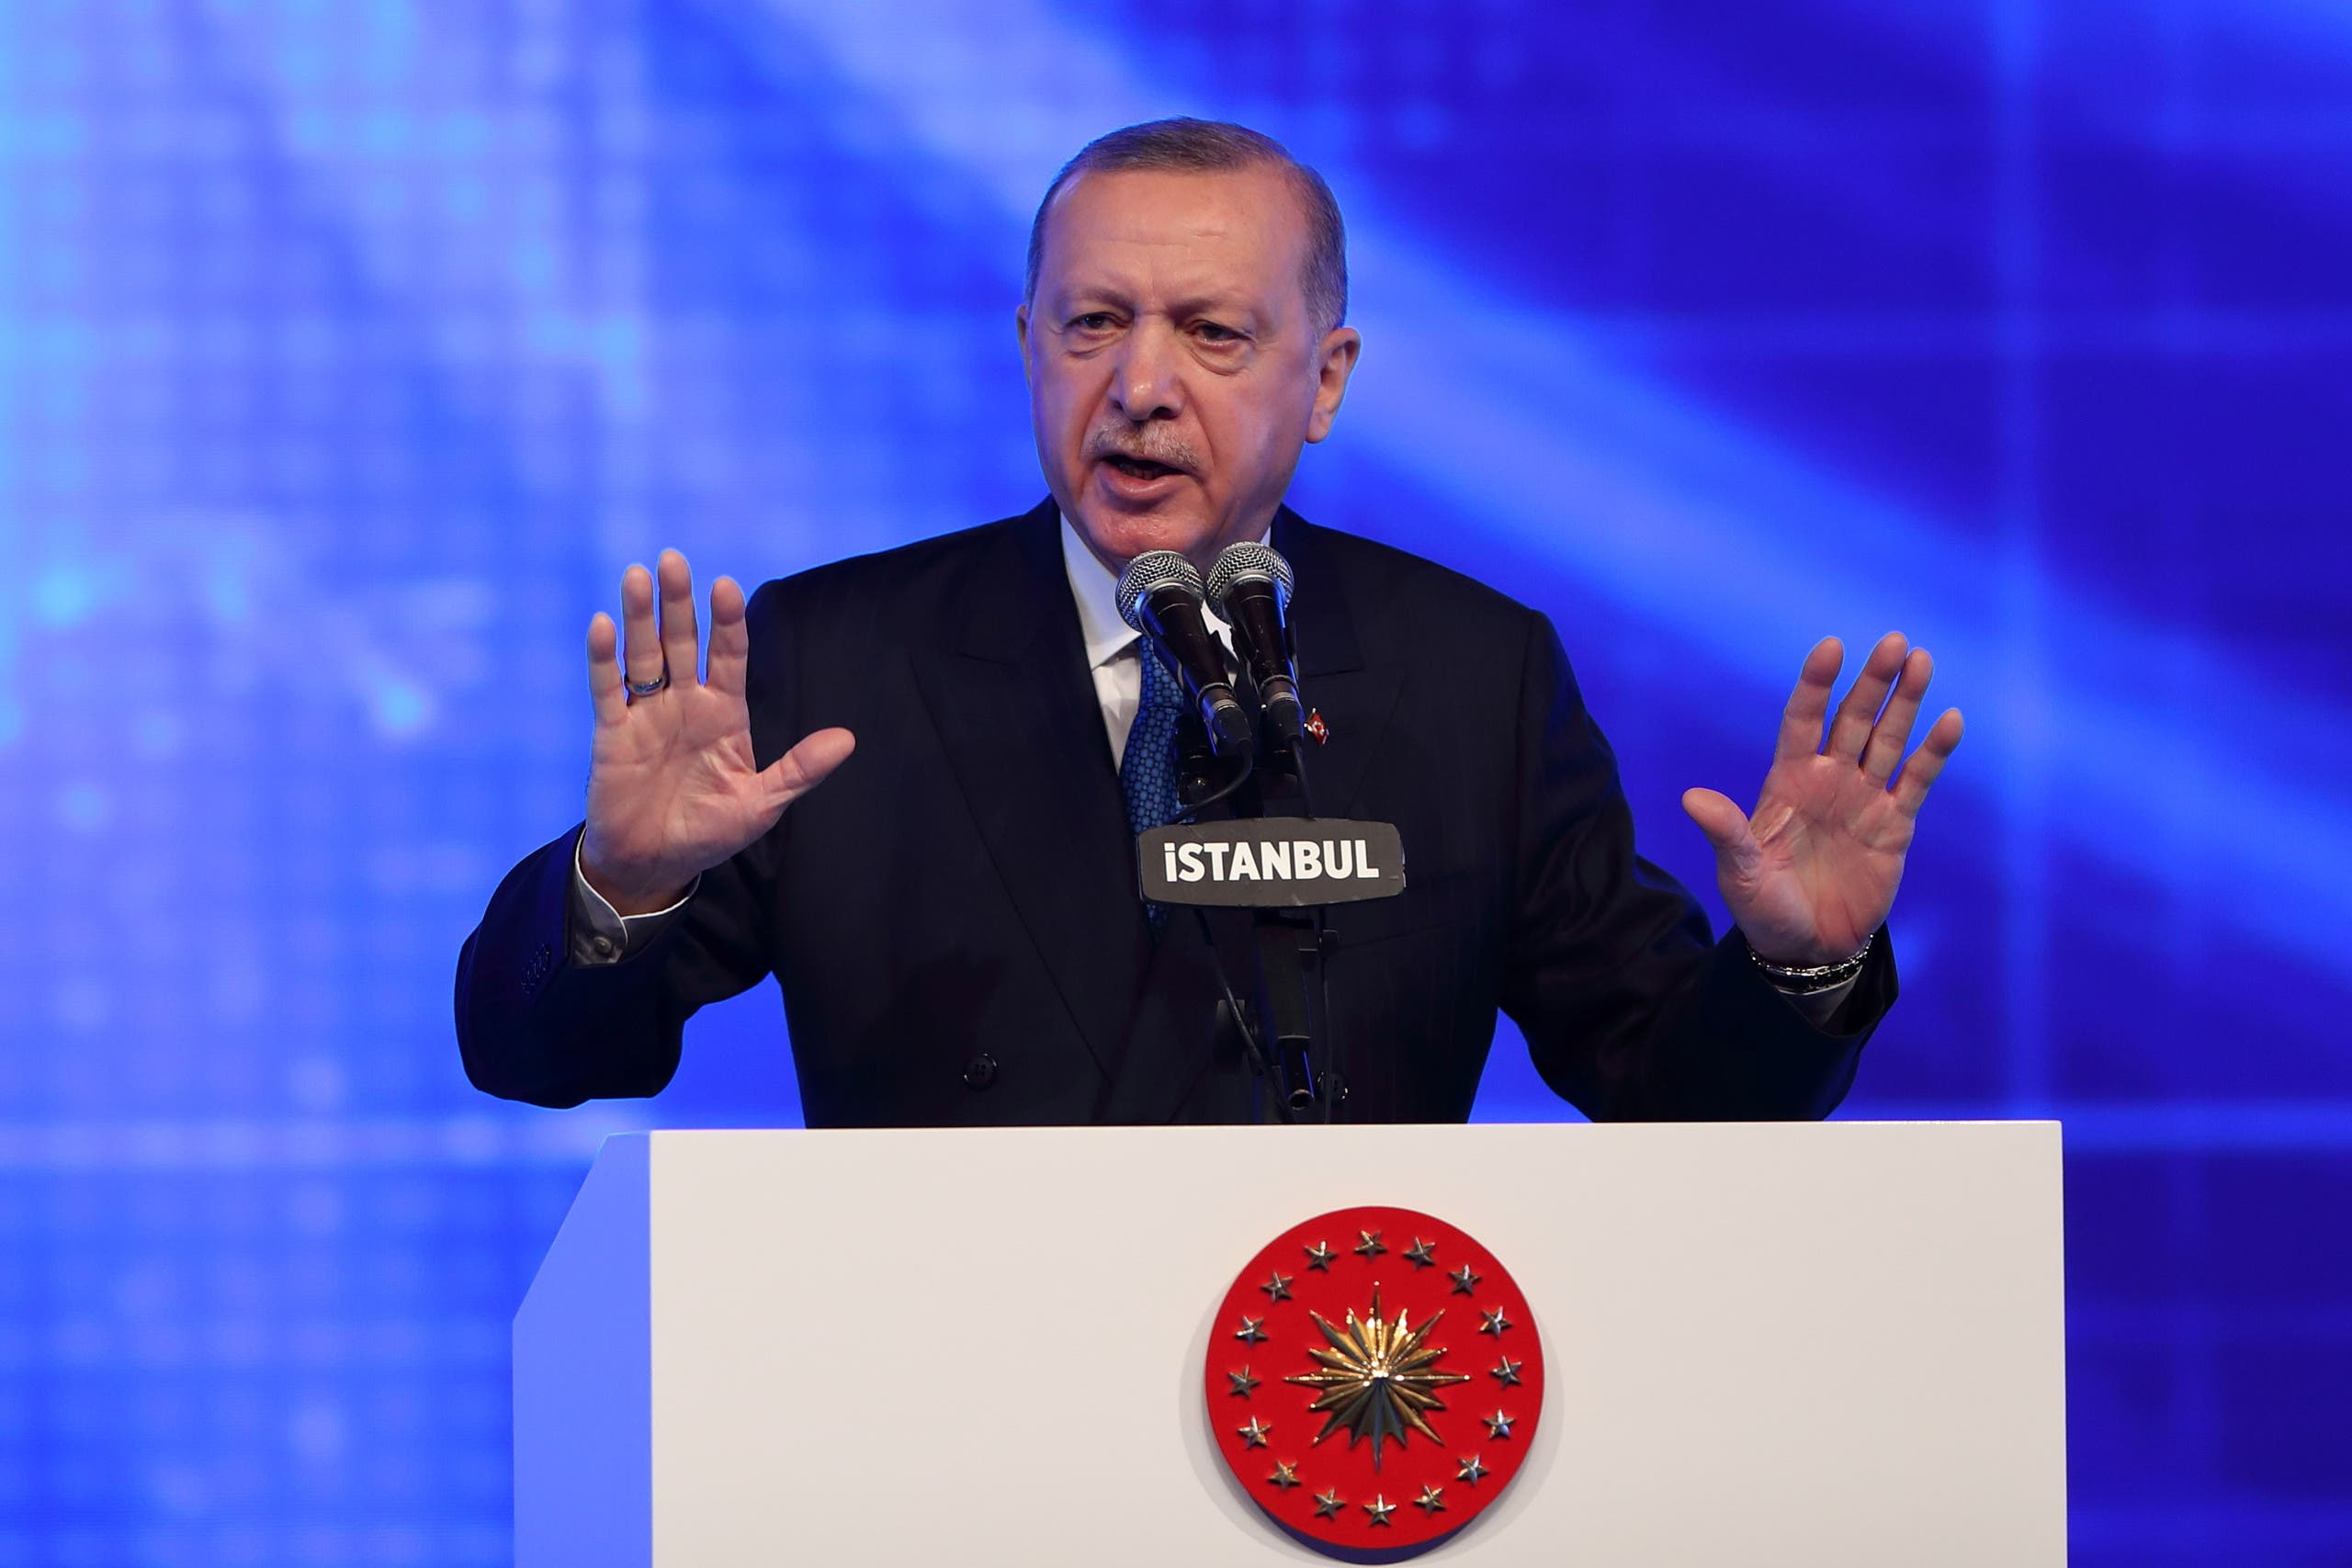 Turkish President Tayyip Erdogan speaks during a meeting to announce an economic reform package, in Istanbul, Turkey March 12, 2021. (Reuters/Murad Sezer)